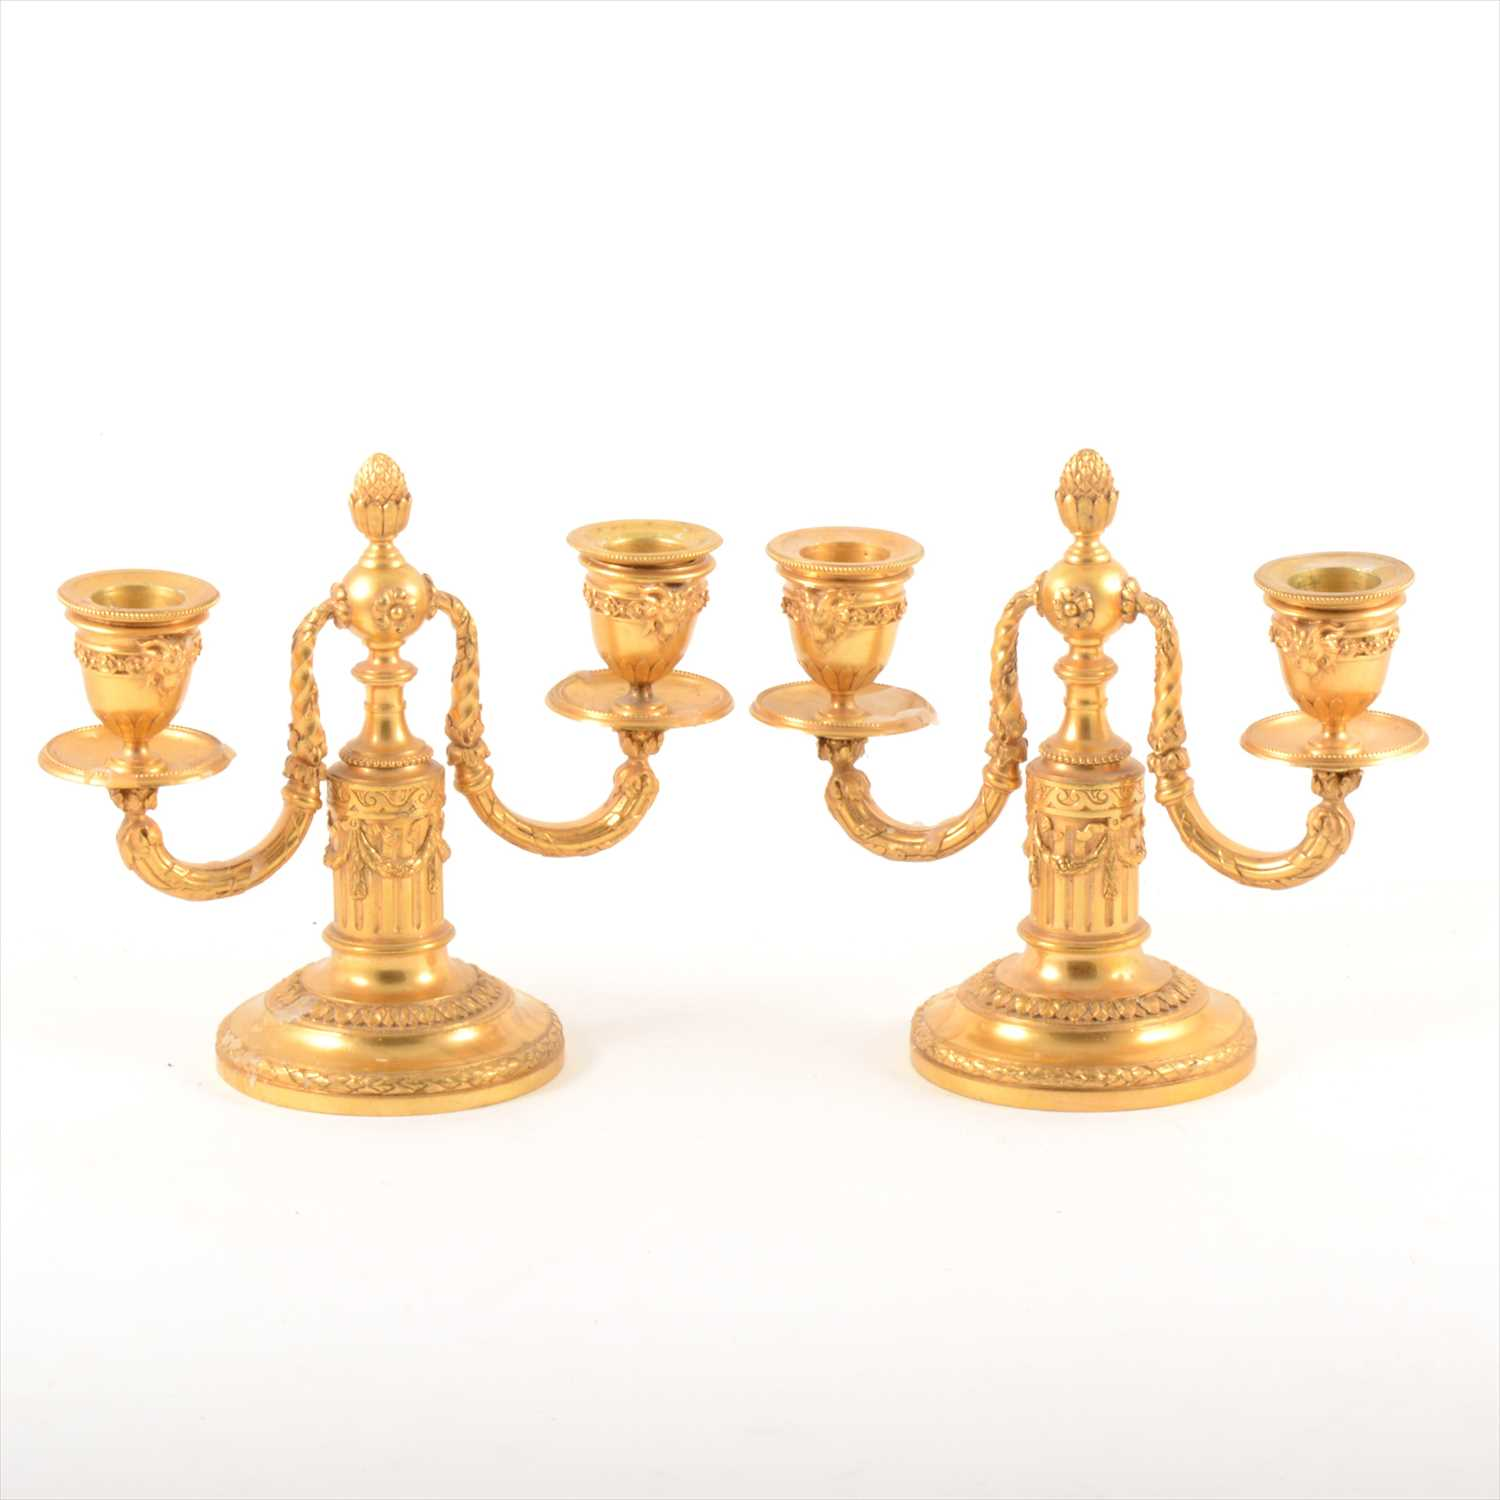 Lot 534-Pair of Louis XVI style gilt metal two-branch candelabra